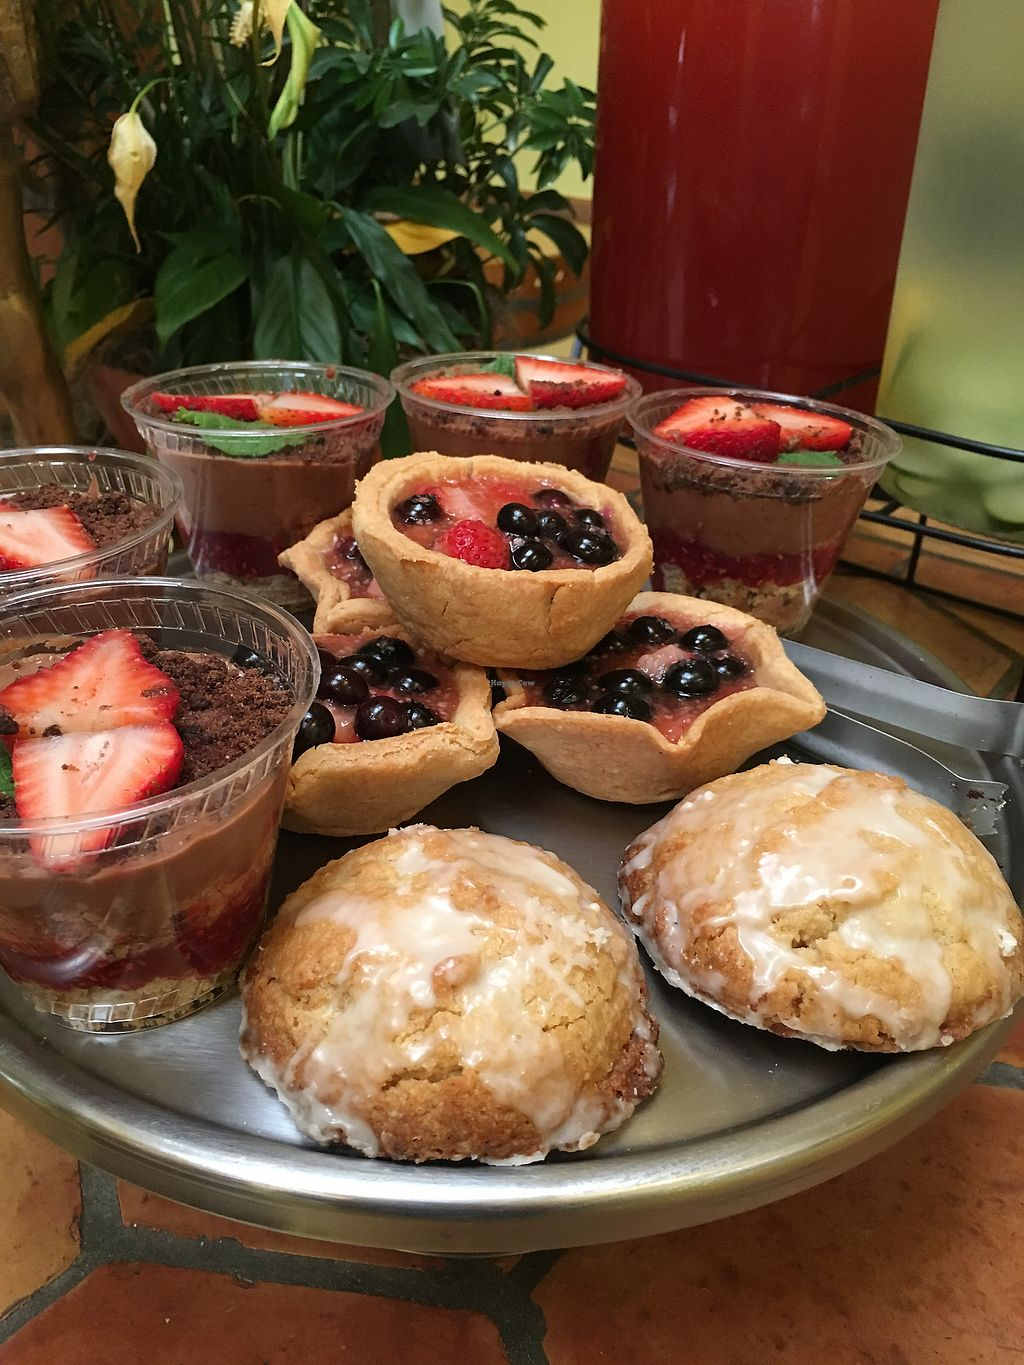 """Photo of Radha Govinda's Buffet  by <a href=""""/members/profile/LengleJungle"""">LengleJungle</a> <br/>gluten free desserts that change daily, mini pies, pudding cups , cookies and cakes  <br/> July 17, 2017  - <a href='/contact/abuse/image/93526/281520'>Report</a>"""